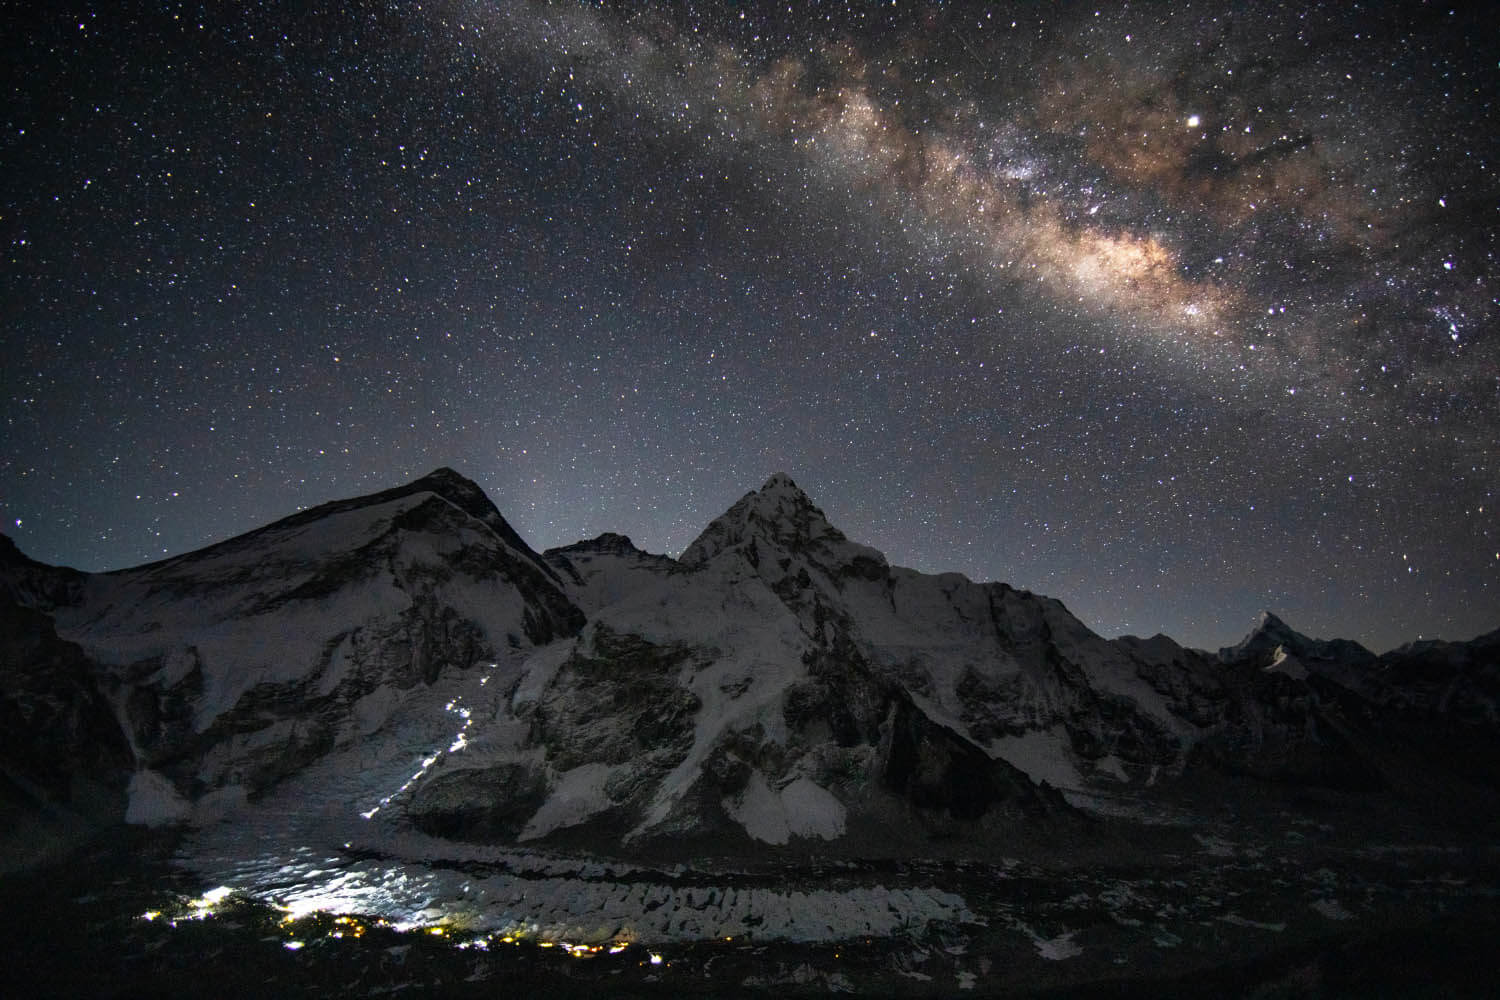 View of Mount Everest illuminated by the stars and climbers' lights